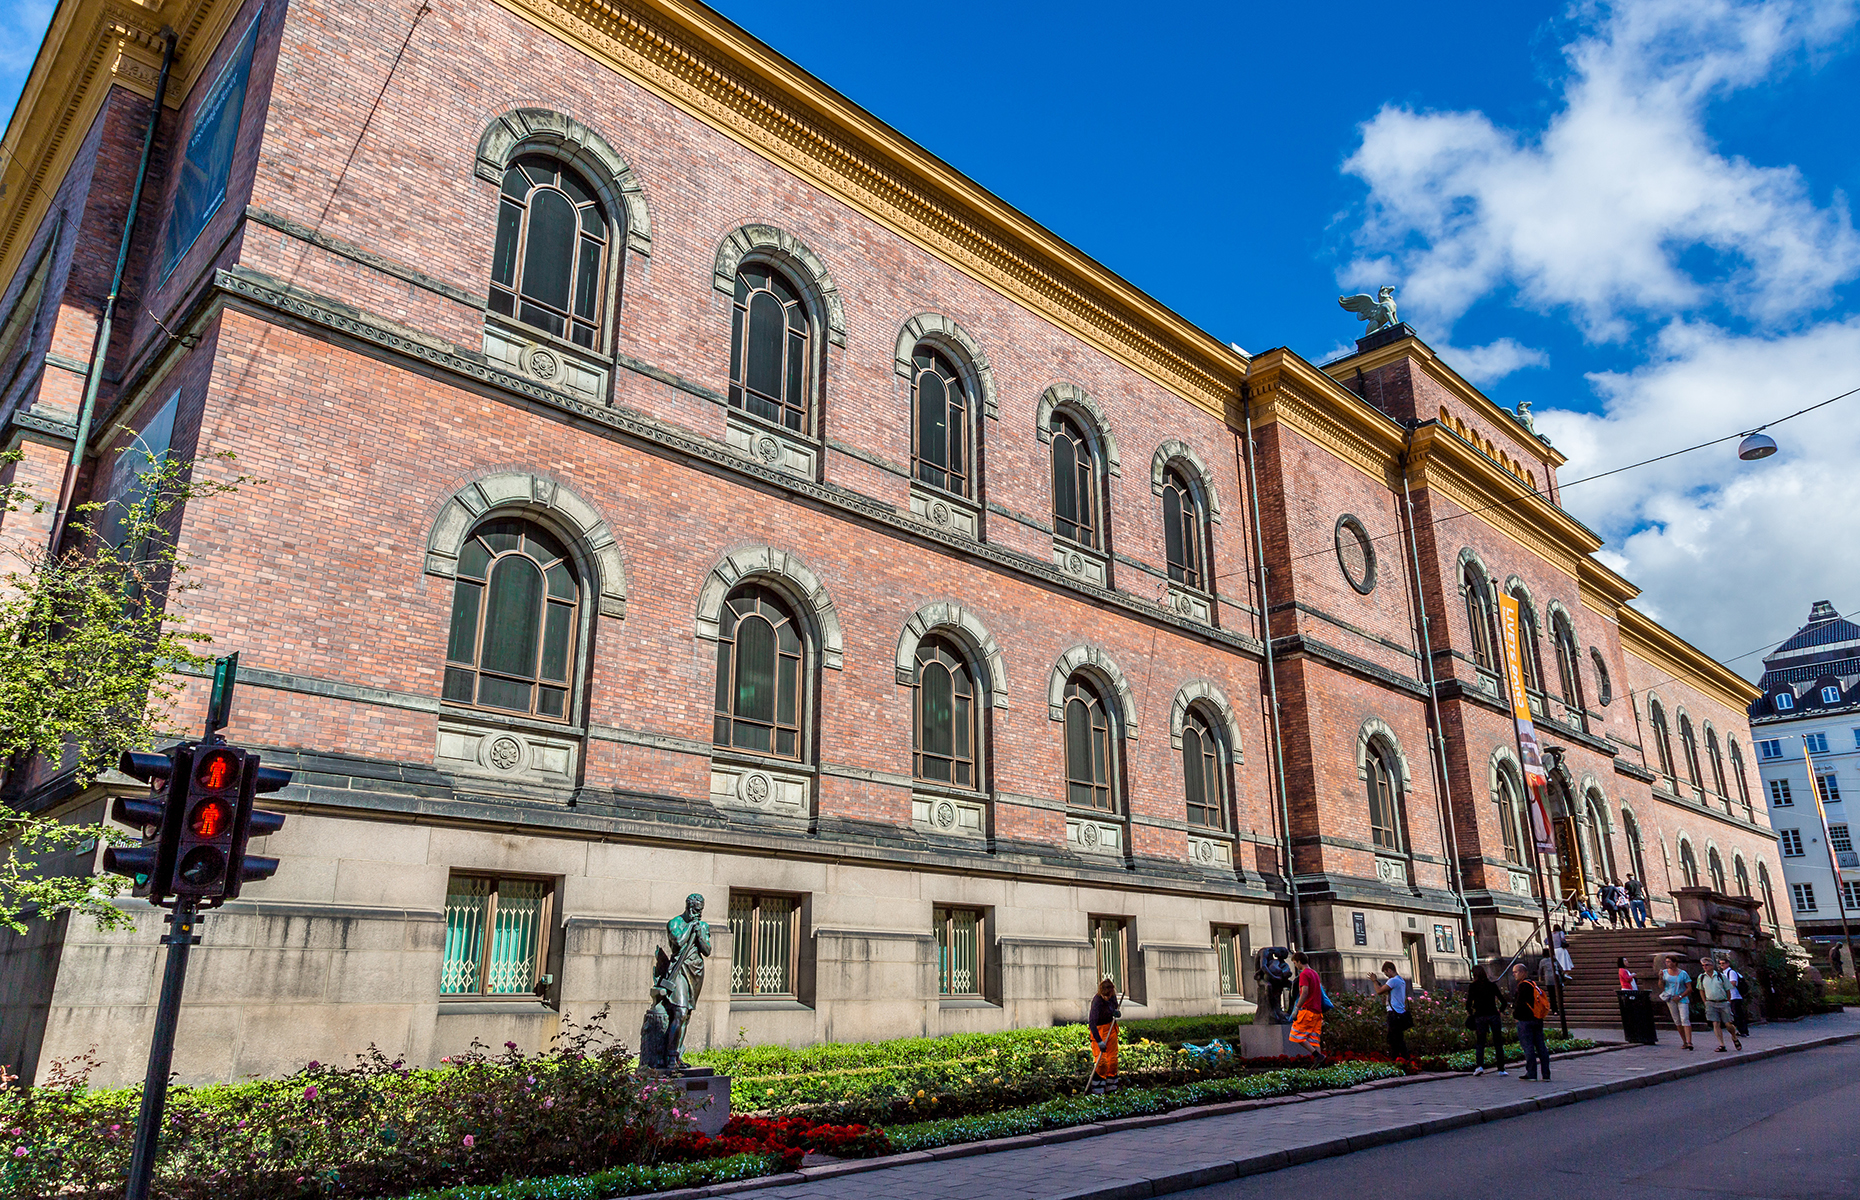 Oslo National Gallery